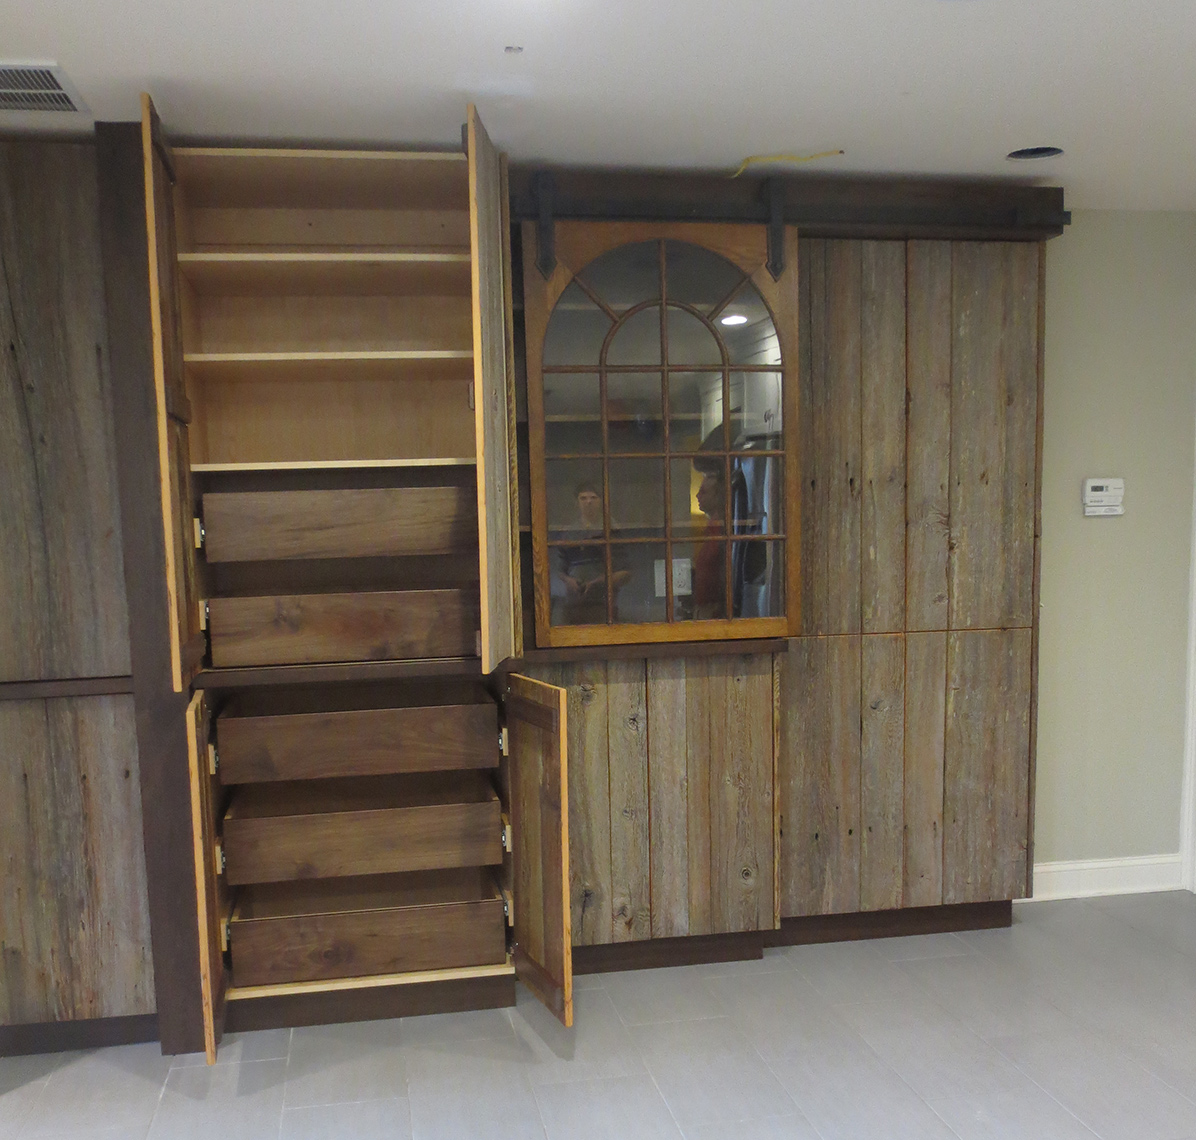 custom cabinets Morris County, NJ-Rustic pantry cabinet, kitchen cabinets rustic 1.jp3